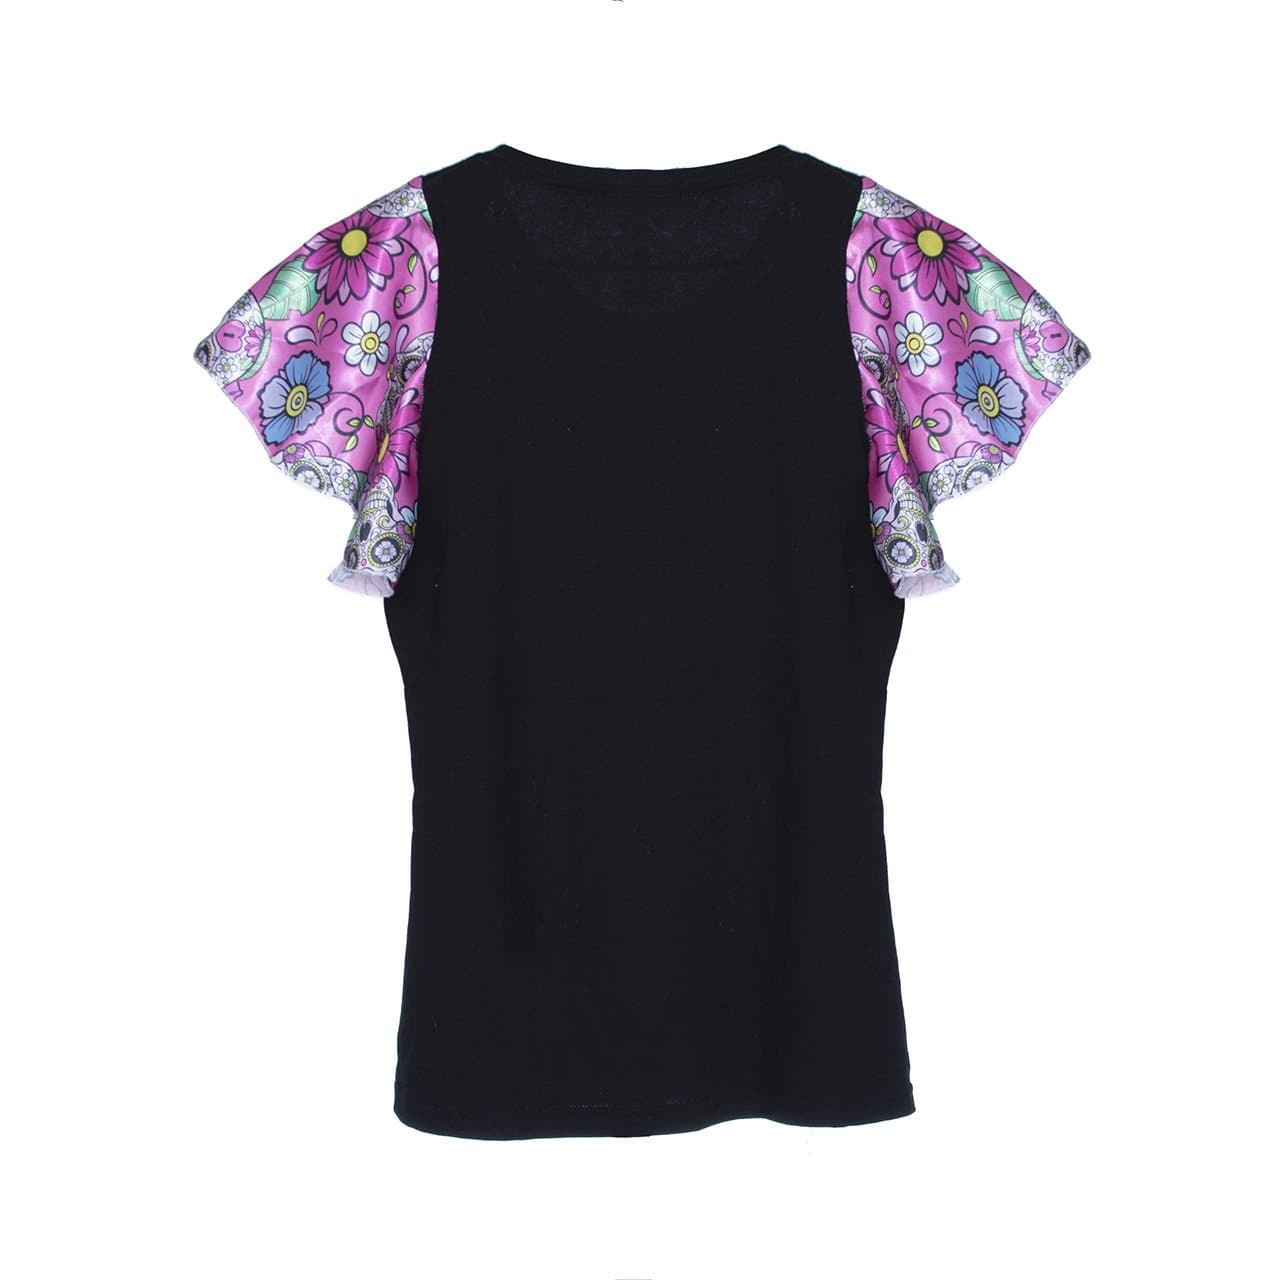 Flare Sleeve Mexican T-Shirt with Sequin Sugar Skull Changing Design - Black